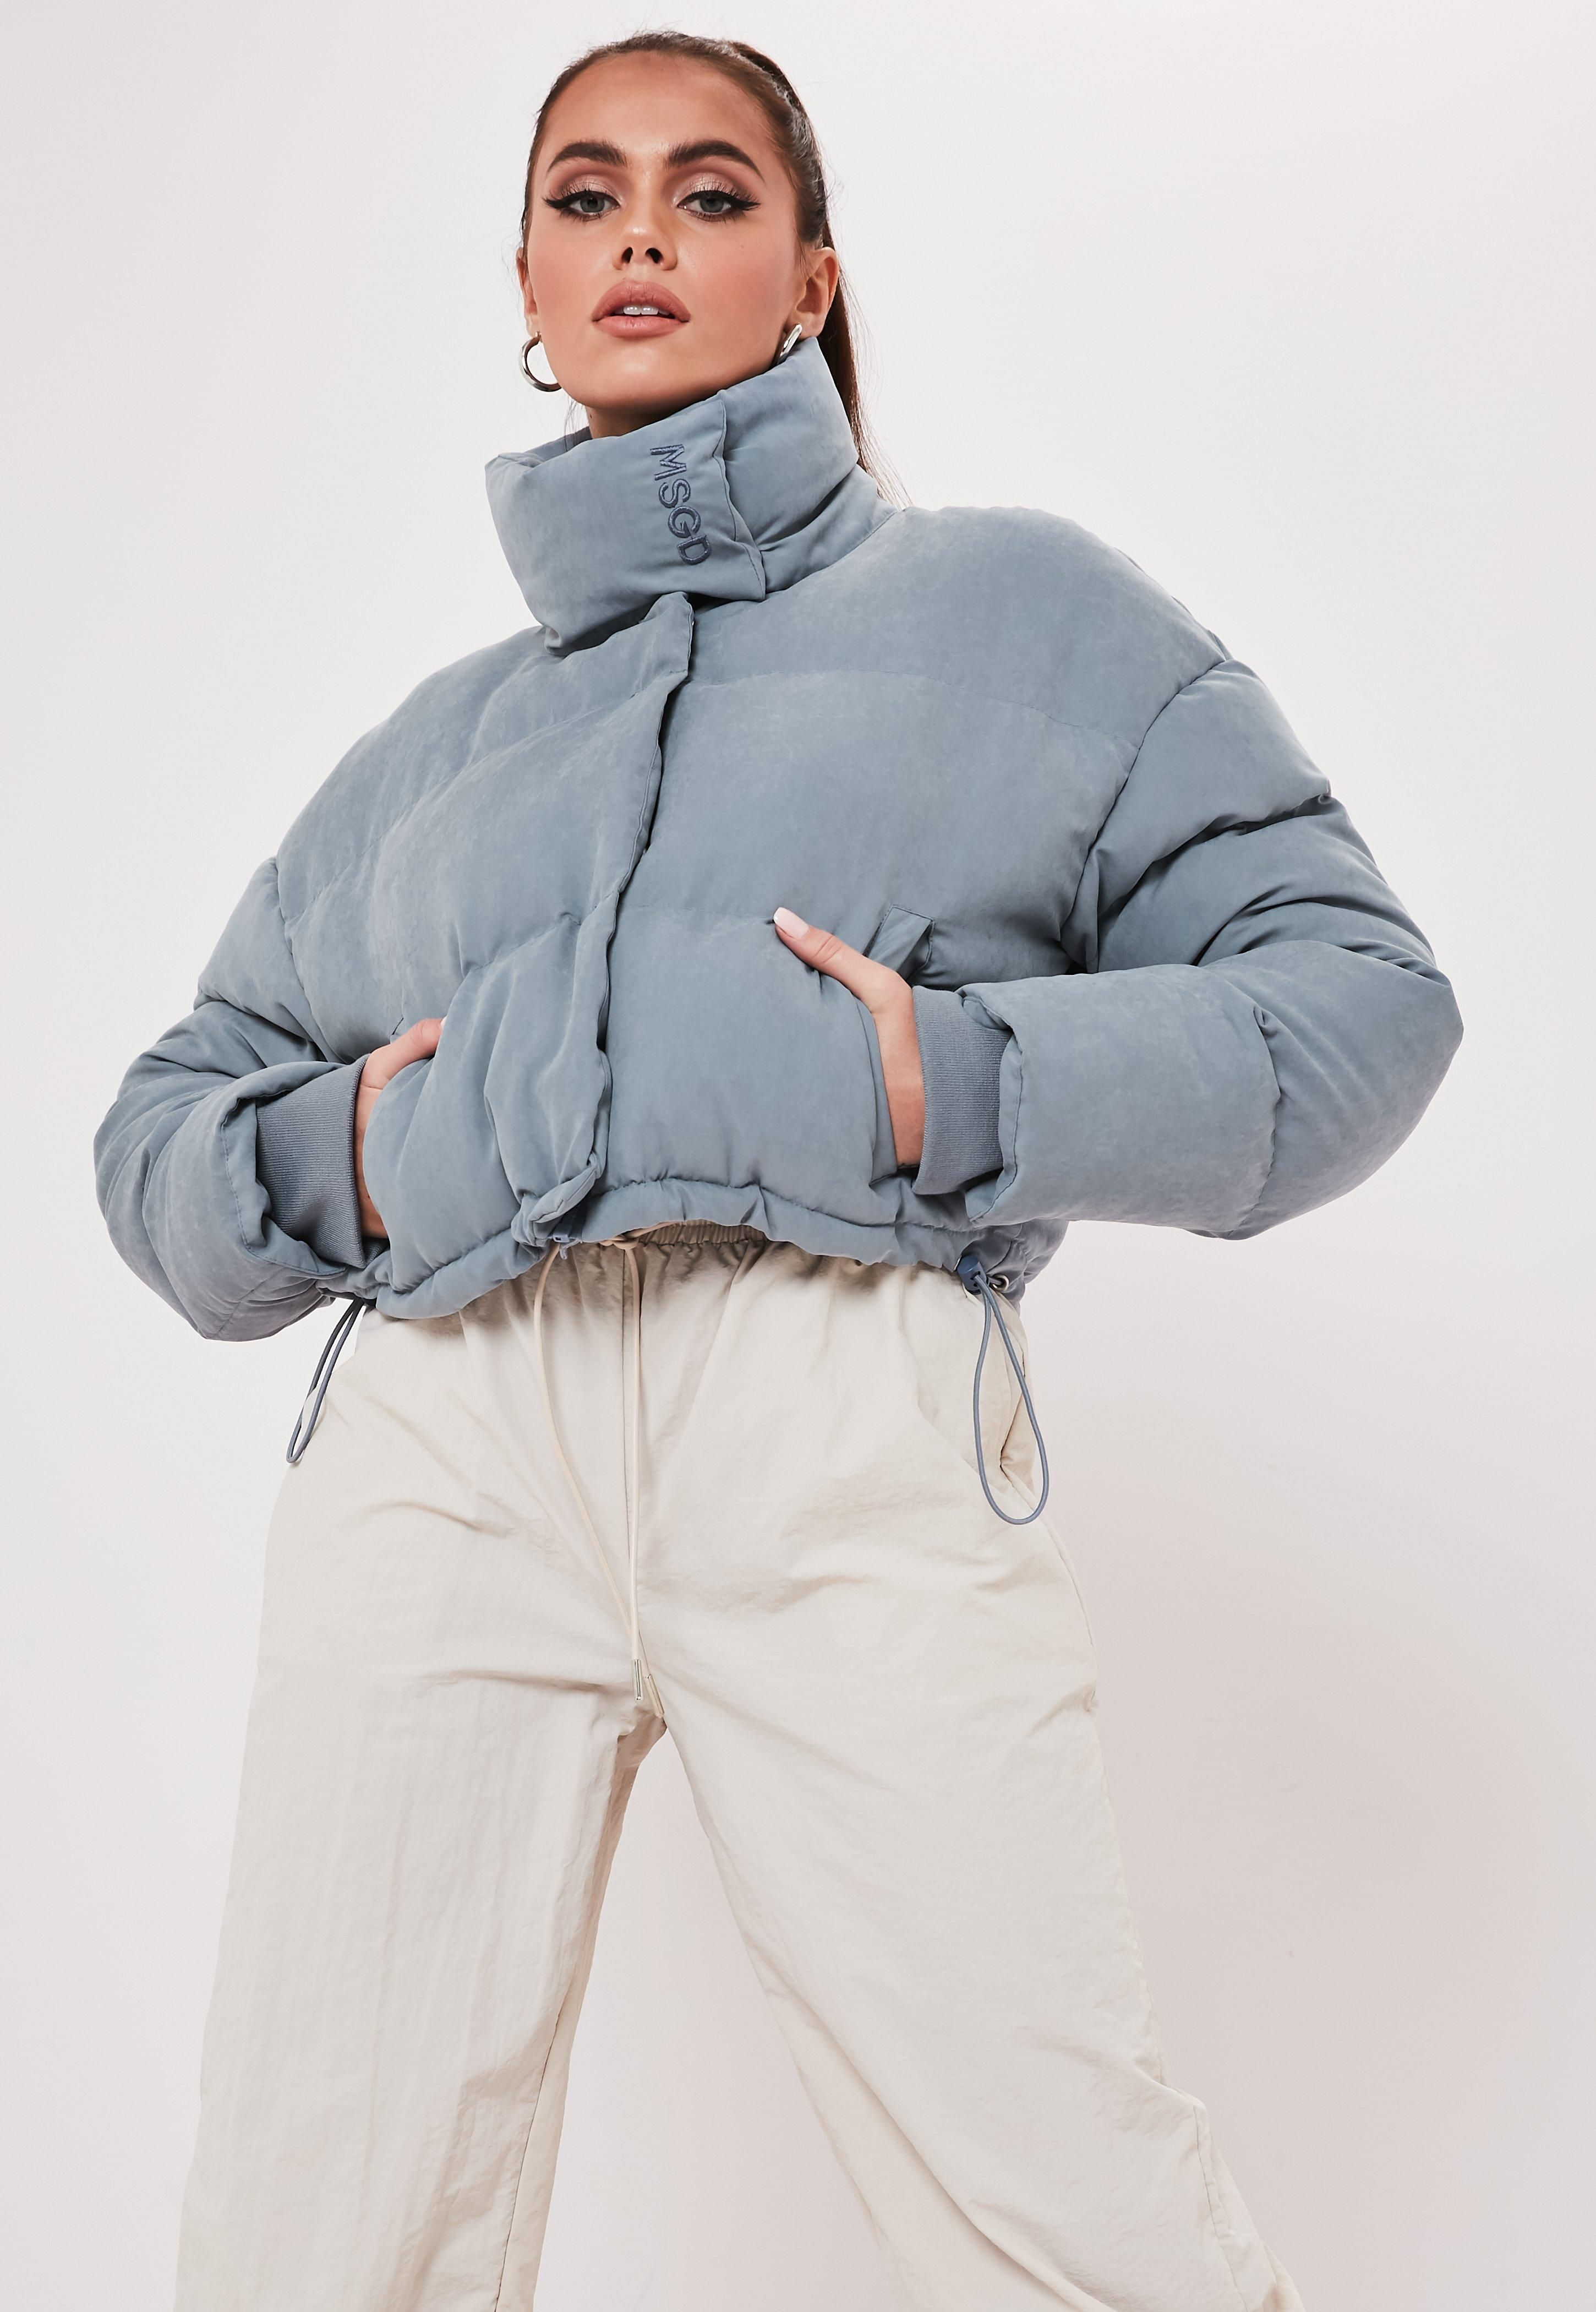 Gray Soft Touch Cropped Puffer Jacket Sponsored Touch Paid Soft Gray Puffer Jacket Women Cropped Puffer Jacket Puffer Jacket Outfit [ 4200 x 2900 Pixel ]